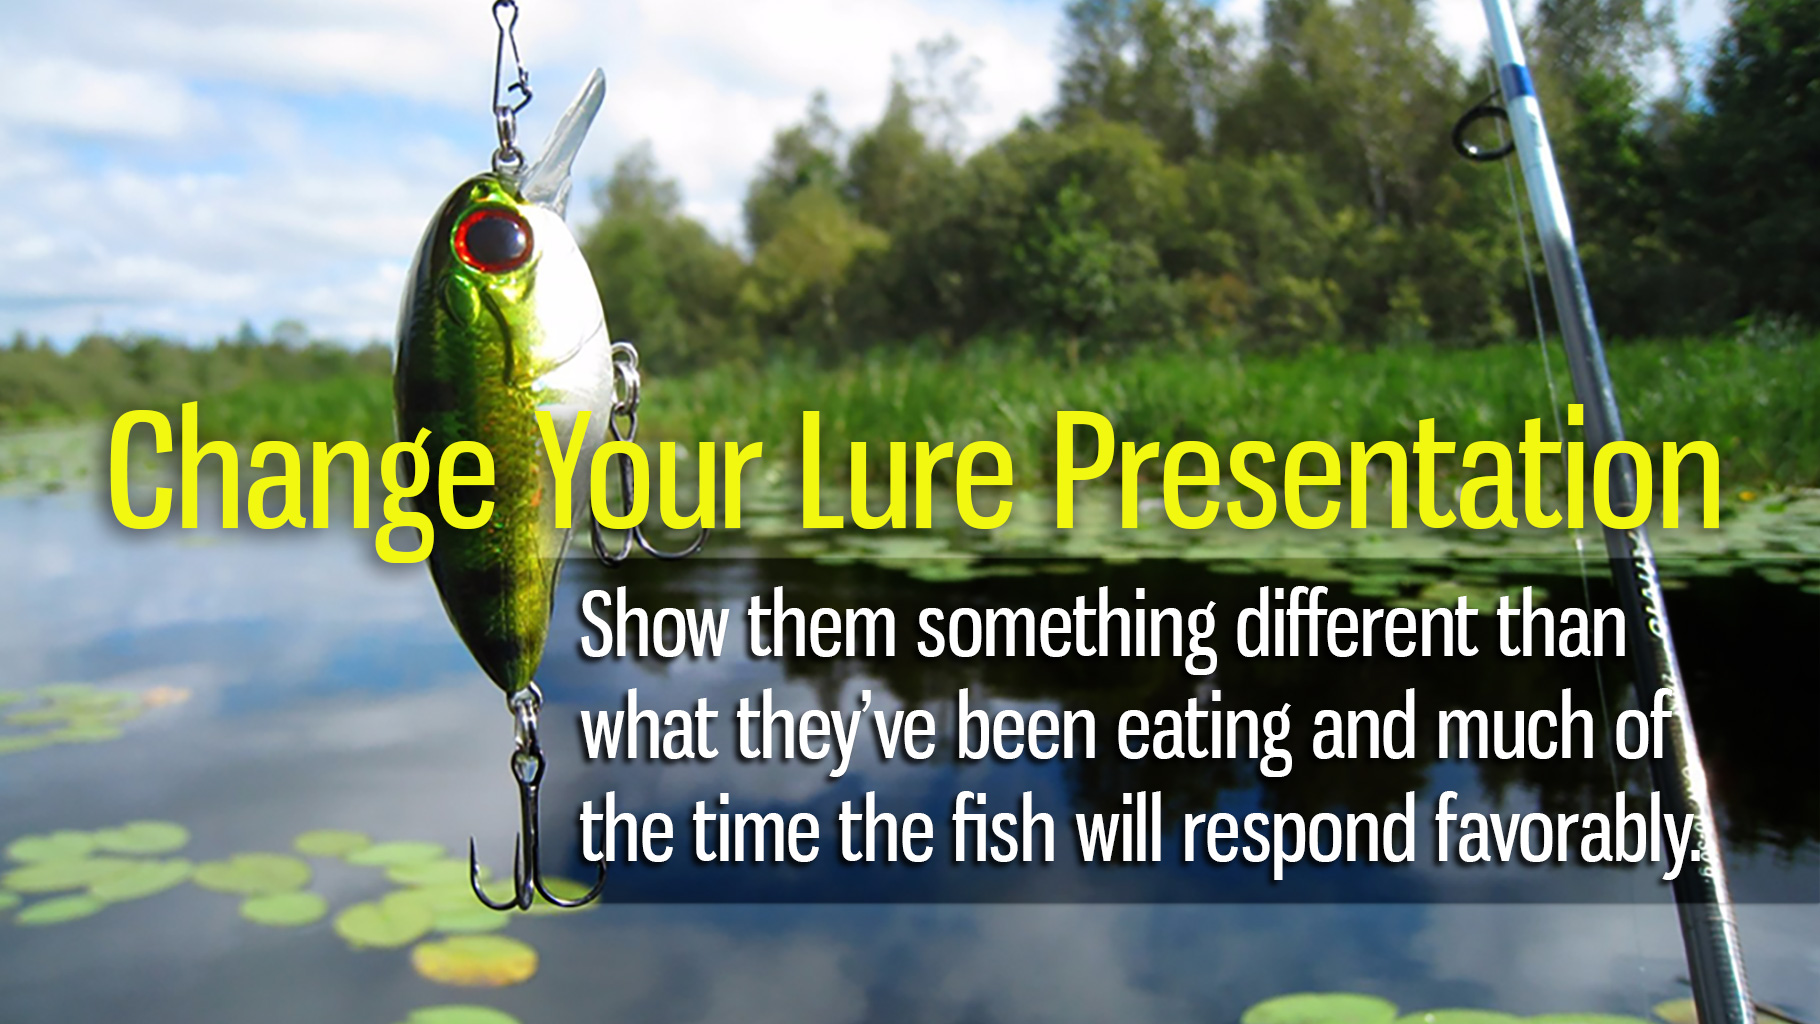 Change Your Lure Presentation For More Fishing Success